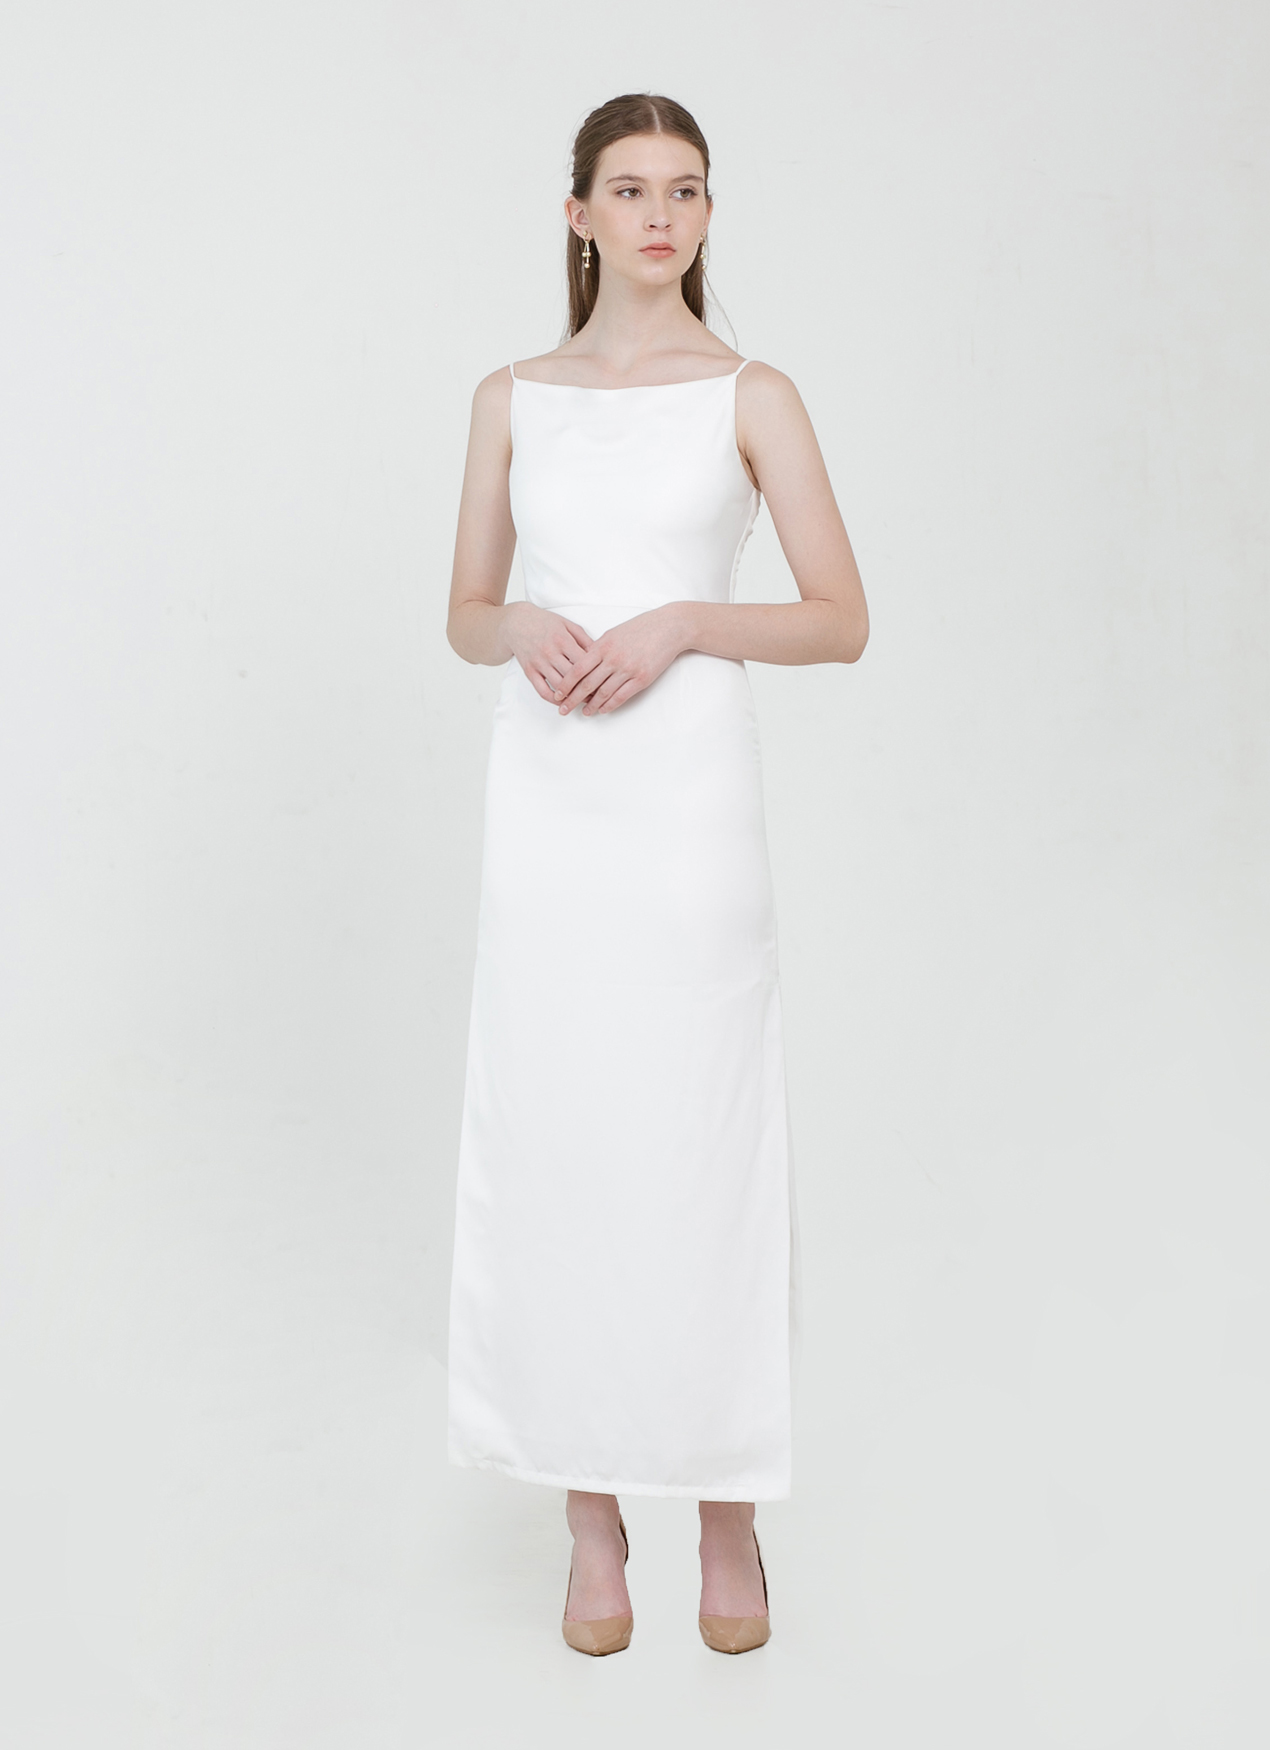 CLOTH INC Drapery Maxi Slit Dress - White